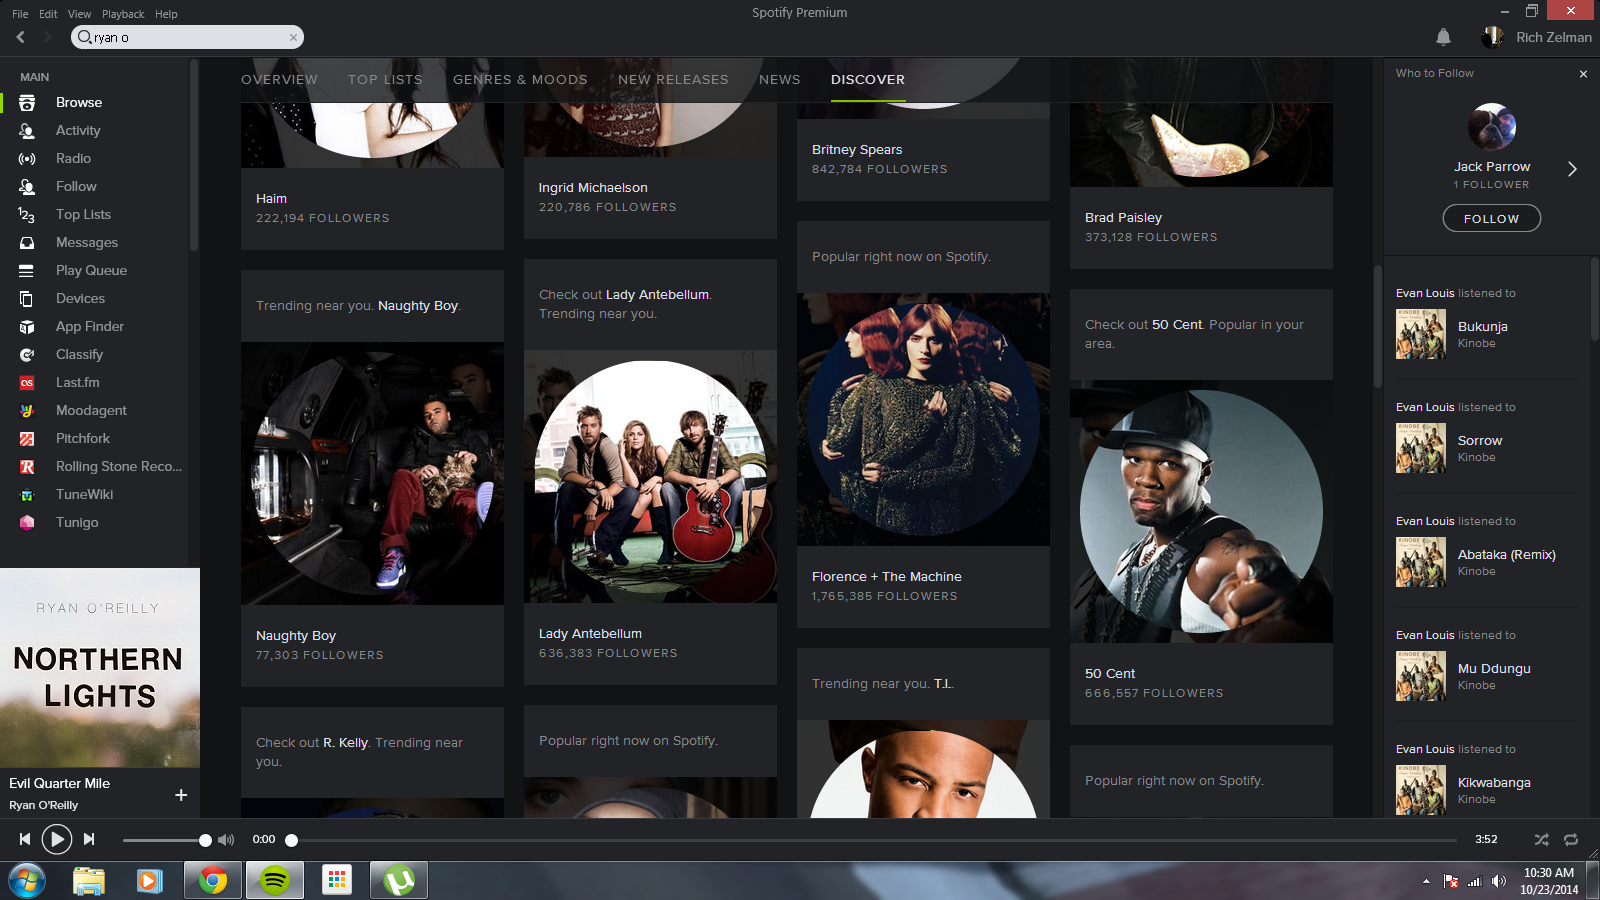 Spotify Screenshot 10-23-2014.png